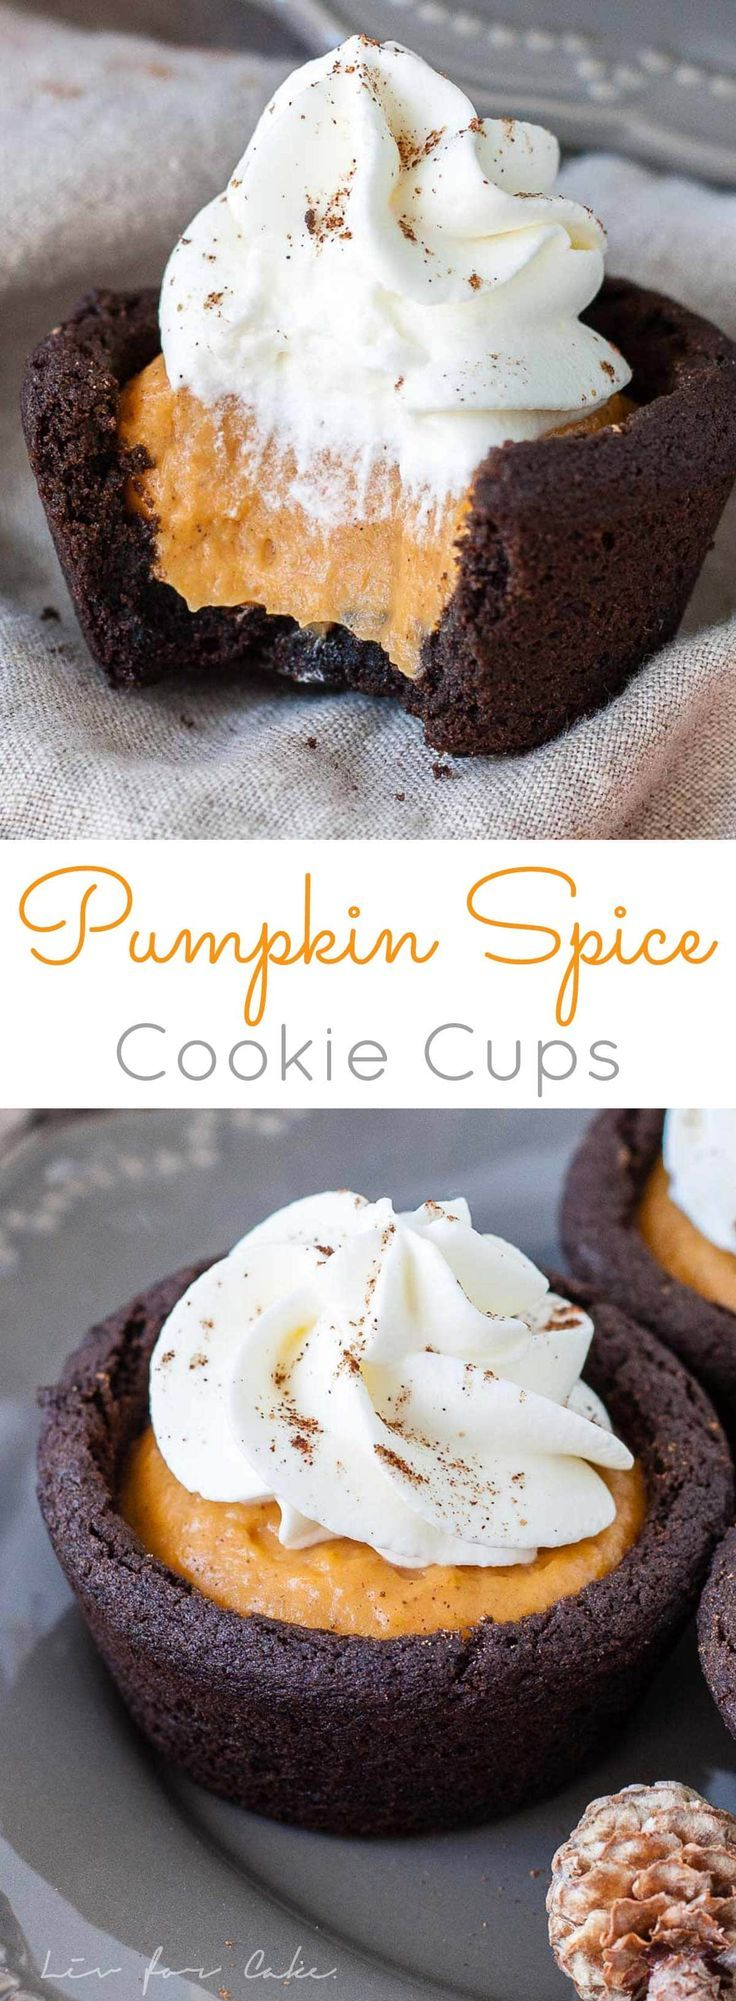 Satisfy your Fall cravings with these easy Pumpkin Spice Cookie Cups! Chewy chocolate cookie cups filled with pumpkin pudding and topped with whipped cream. | http://livforcake.com